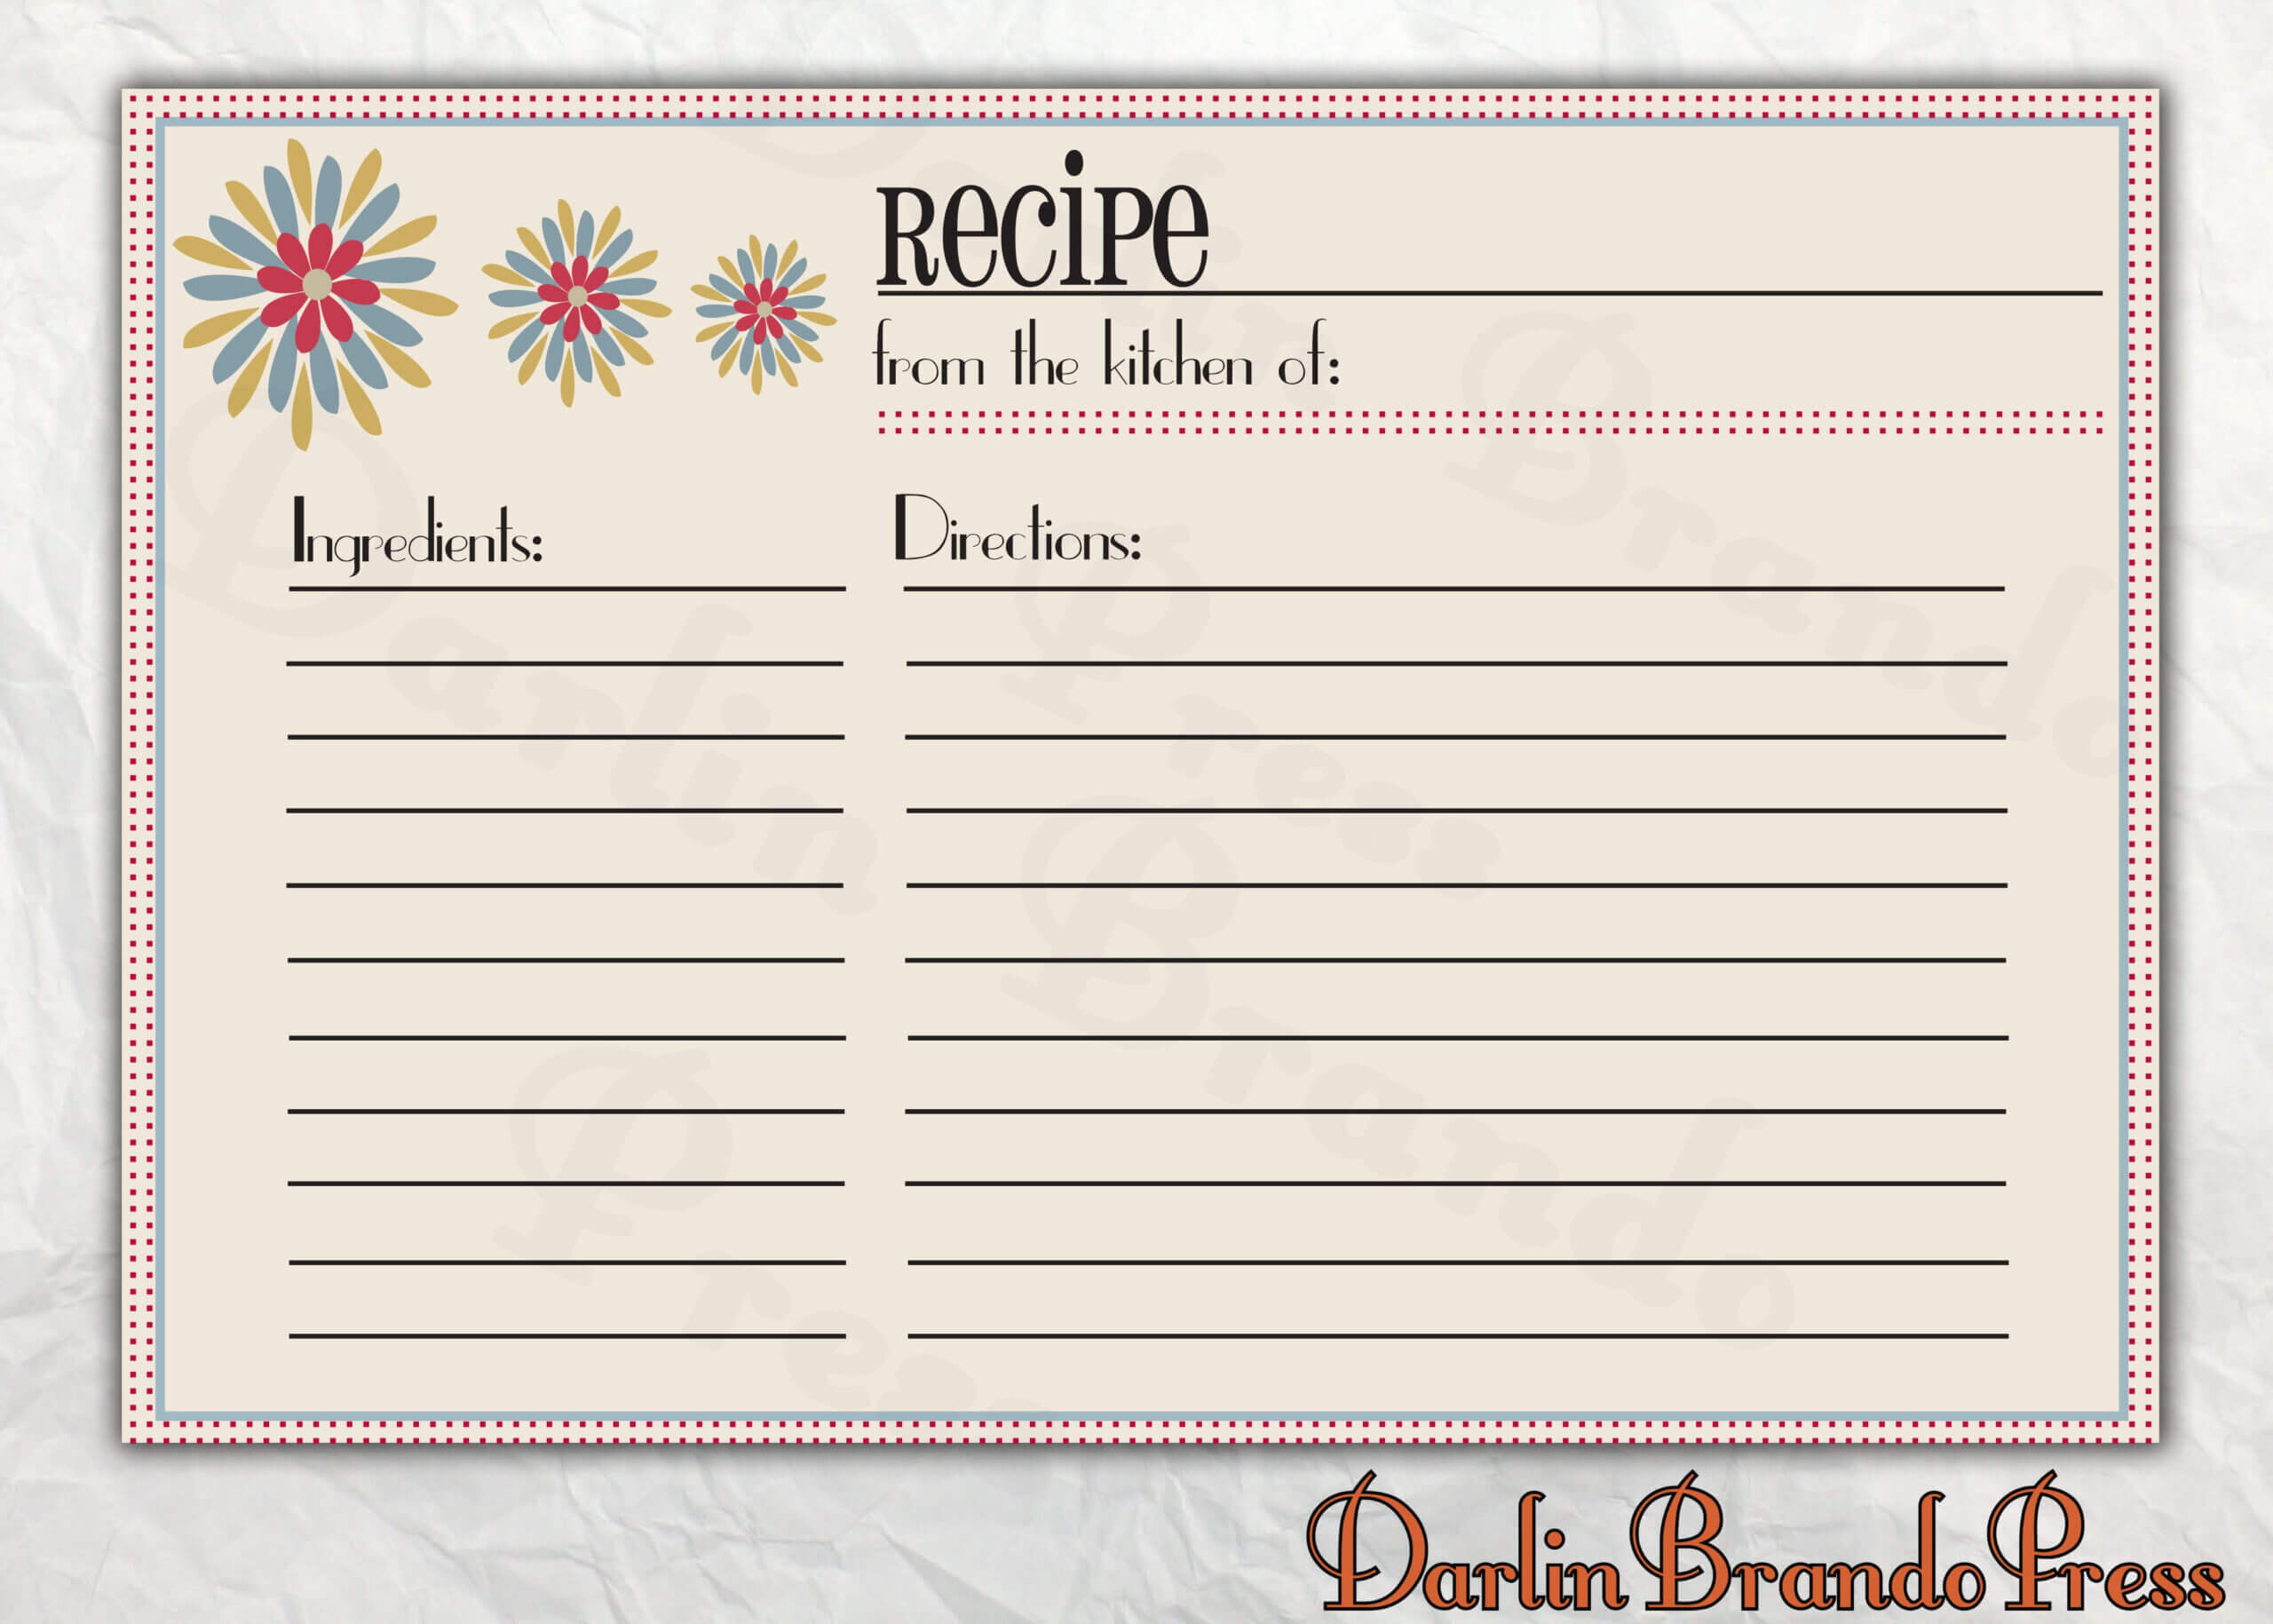 Recipes Card Templates Word | Recipe Template For Word Within Microsoft Word Recipe Card Template